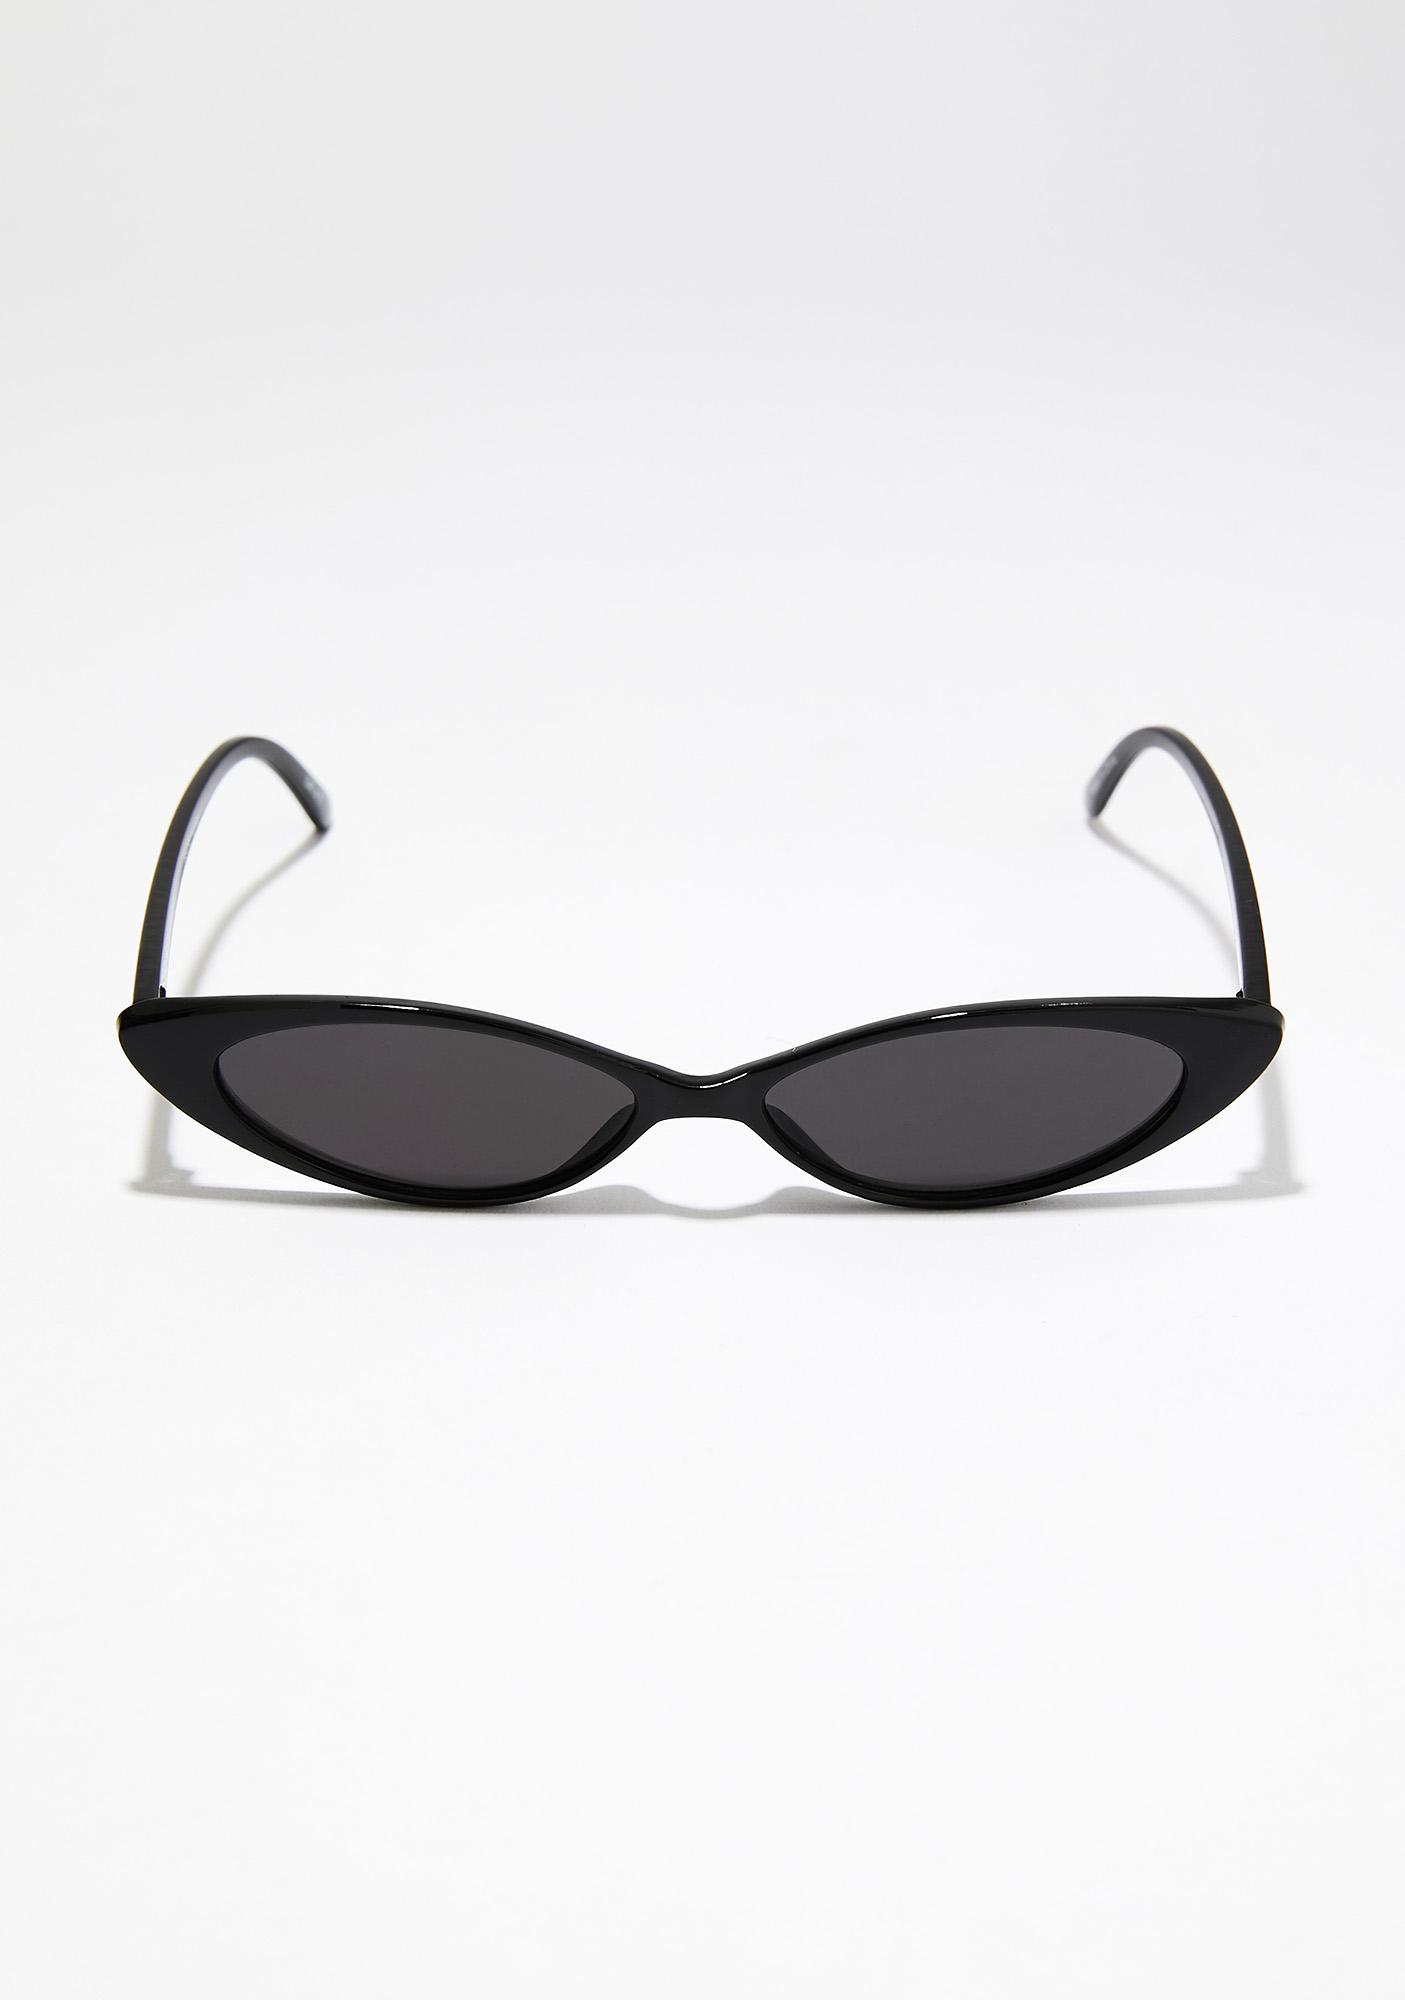 Midnight Deadly Encounter Skinny Sunglasses